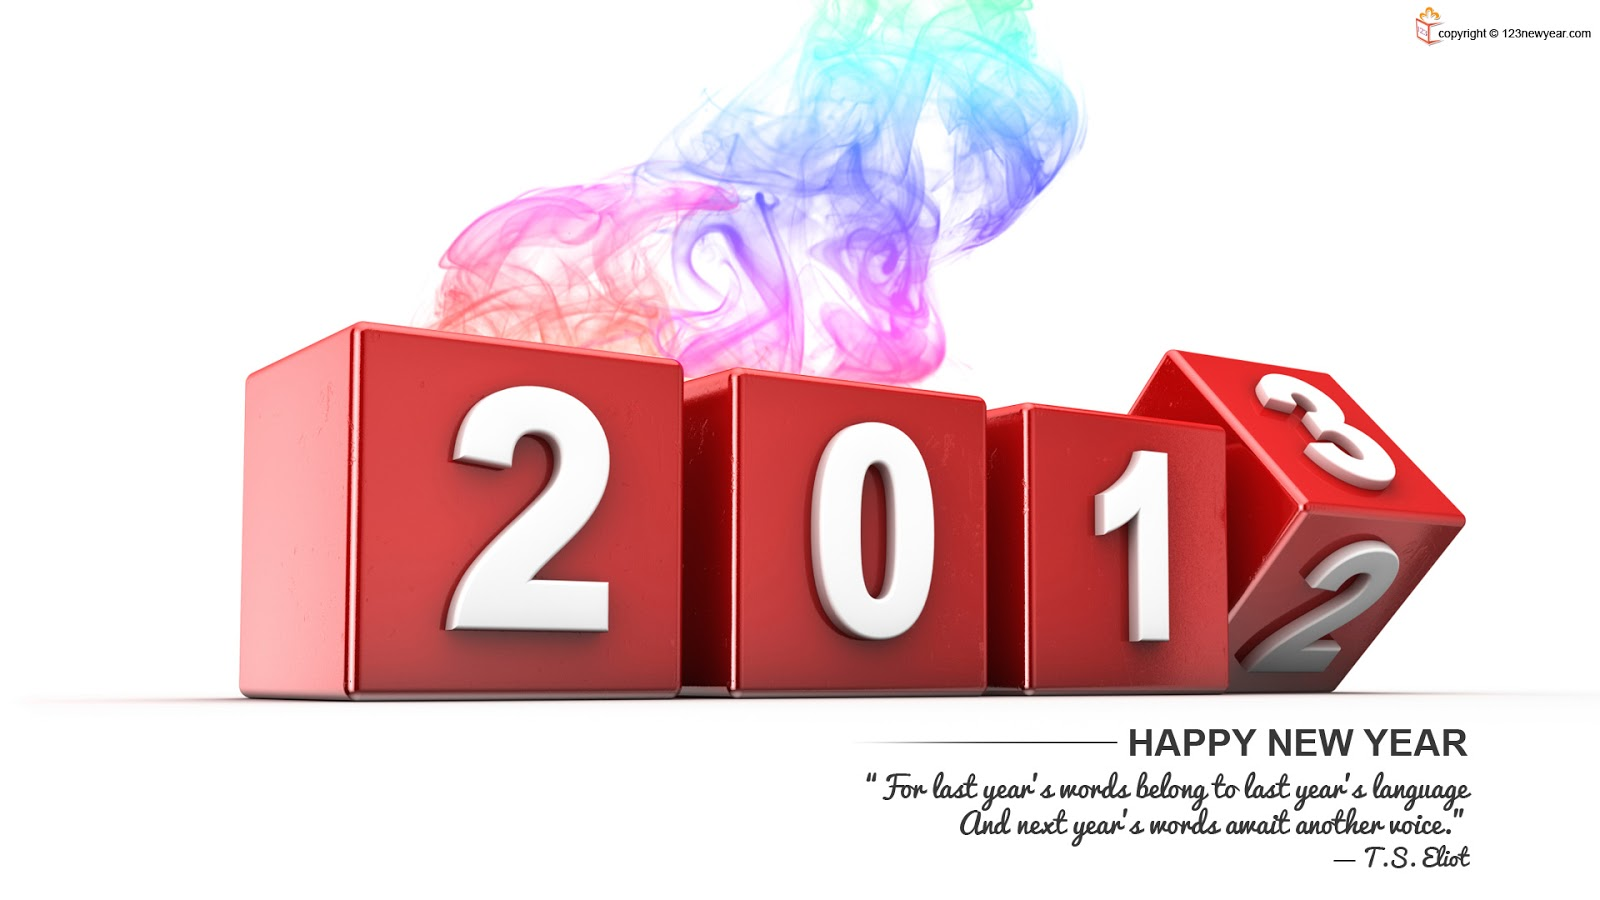 Happy New Year Quotes 2013